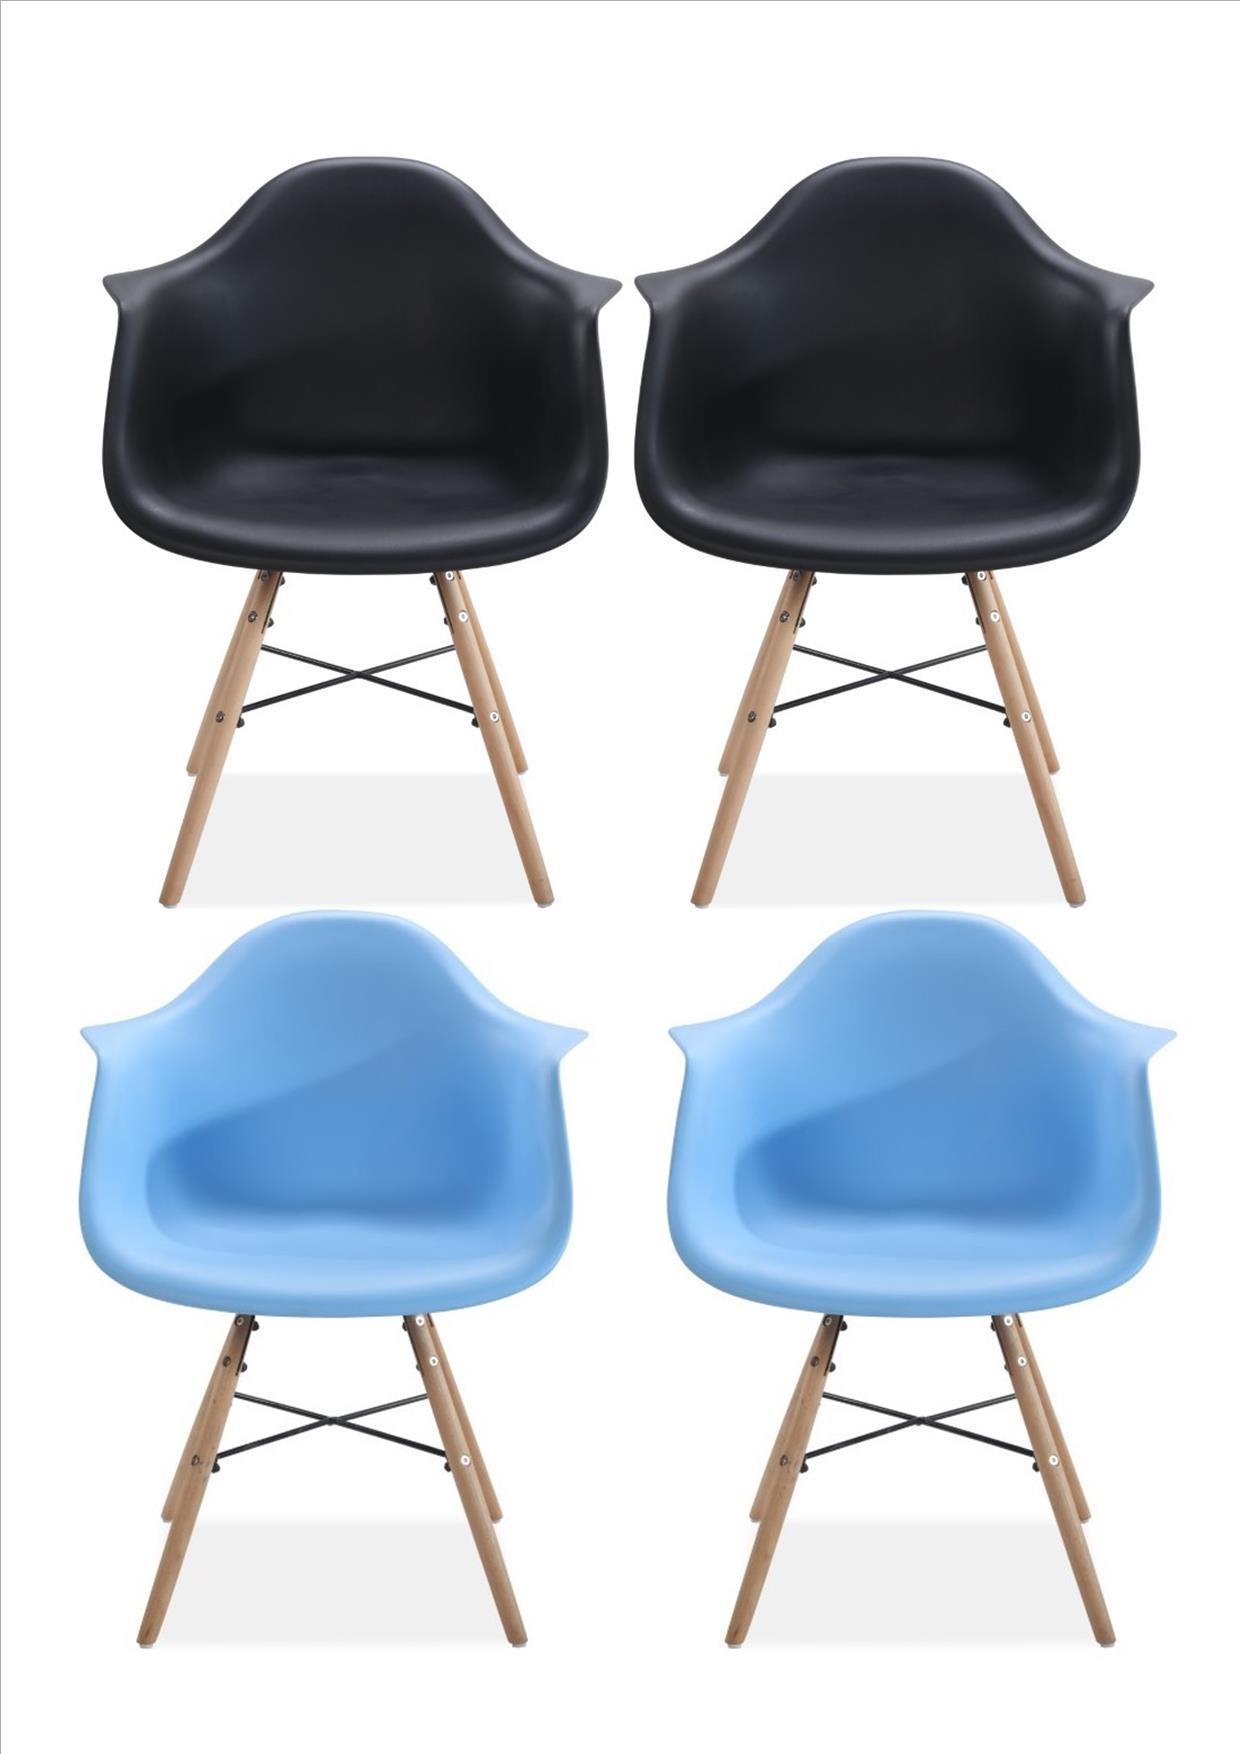 4 Jinx 2 Blue 2 Black Tub Eiffel Kitchen Dining Chair Vintage Bucket Plastic